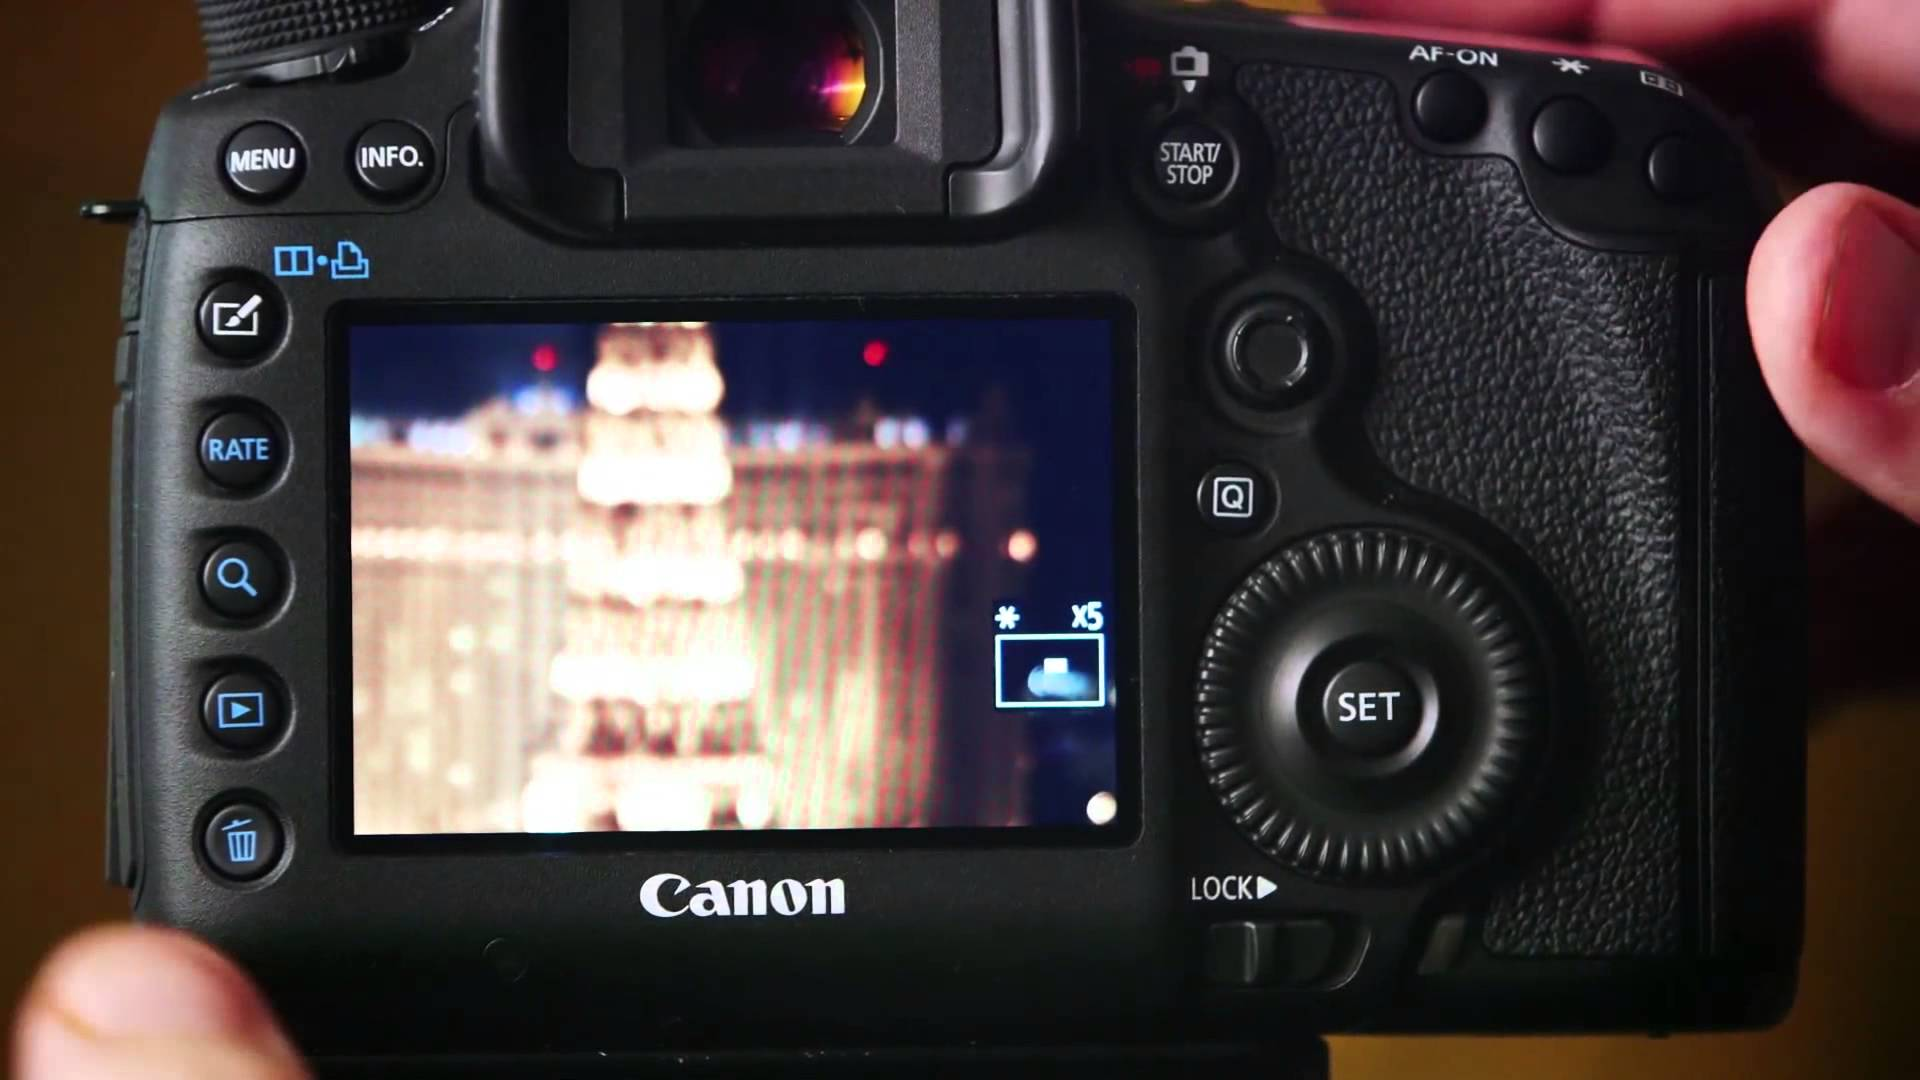 Best quality photo export for instagram: tips